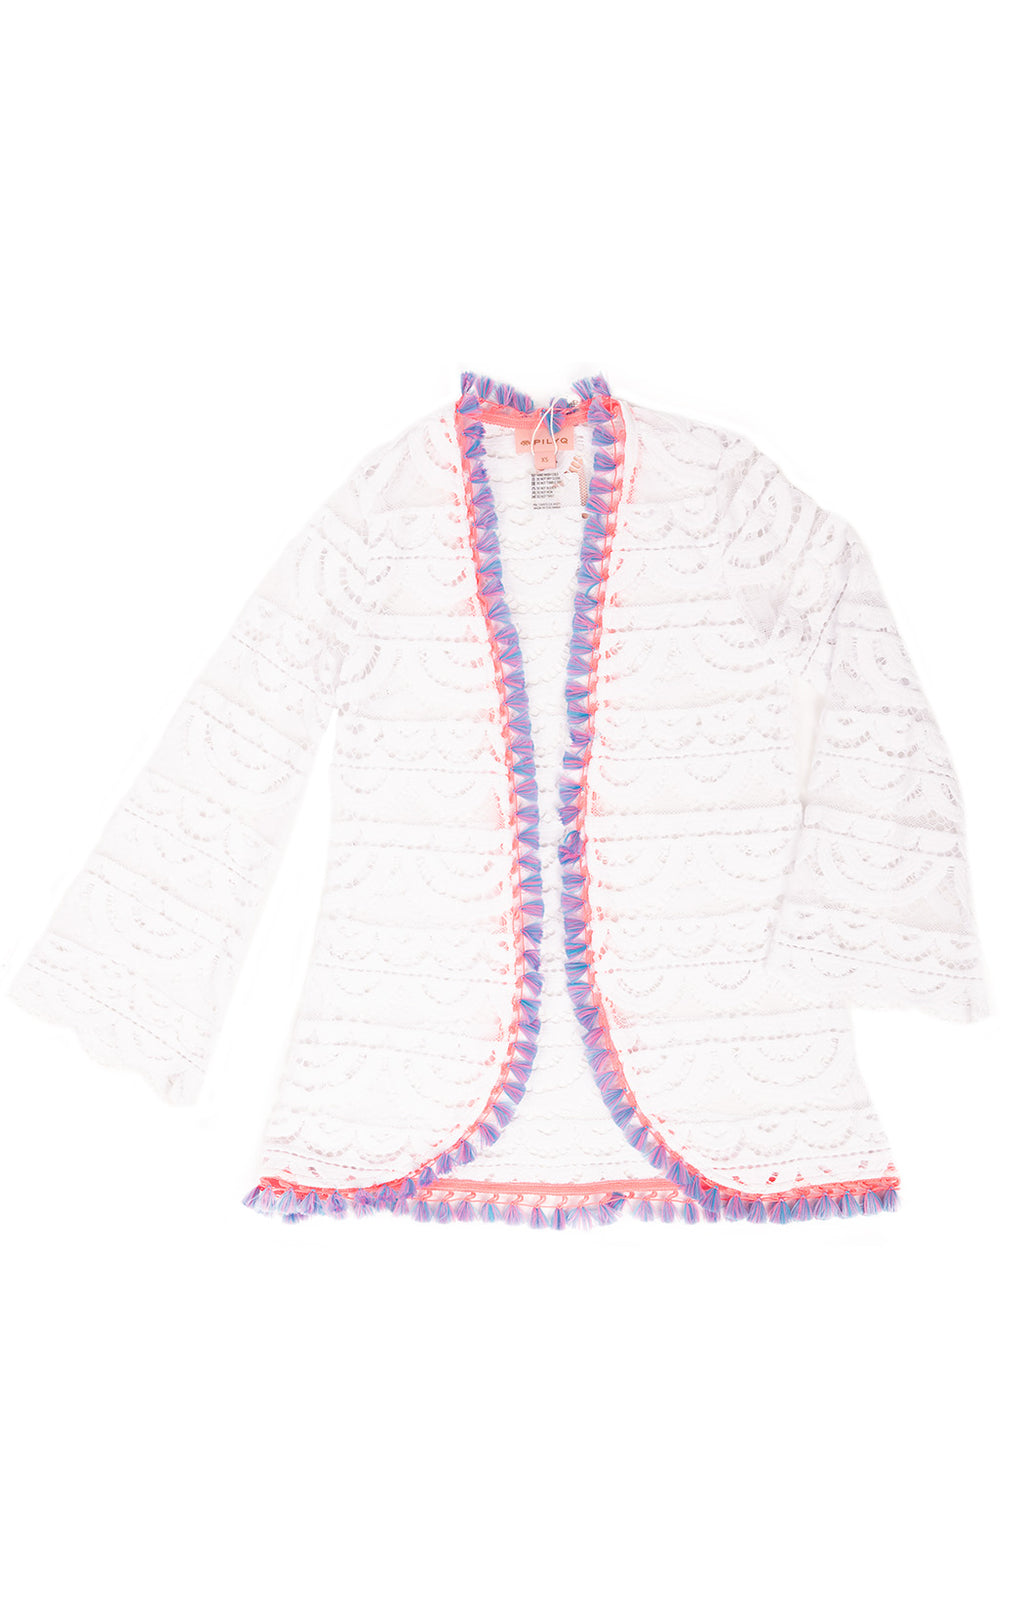 White lace kimono/ coverup with pink and purple fringe border